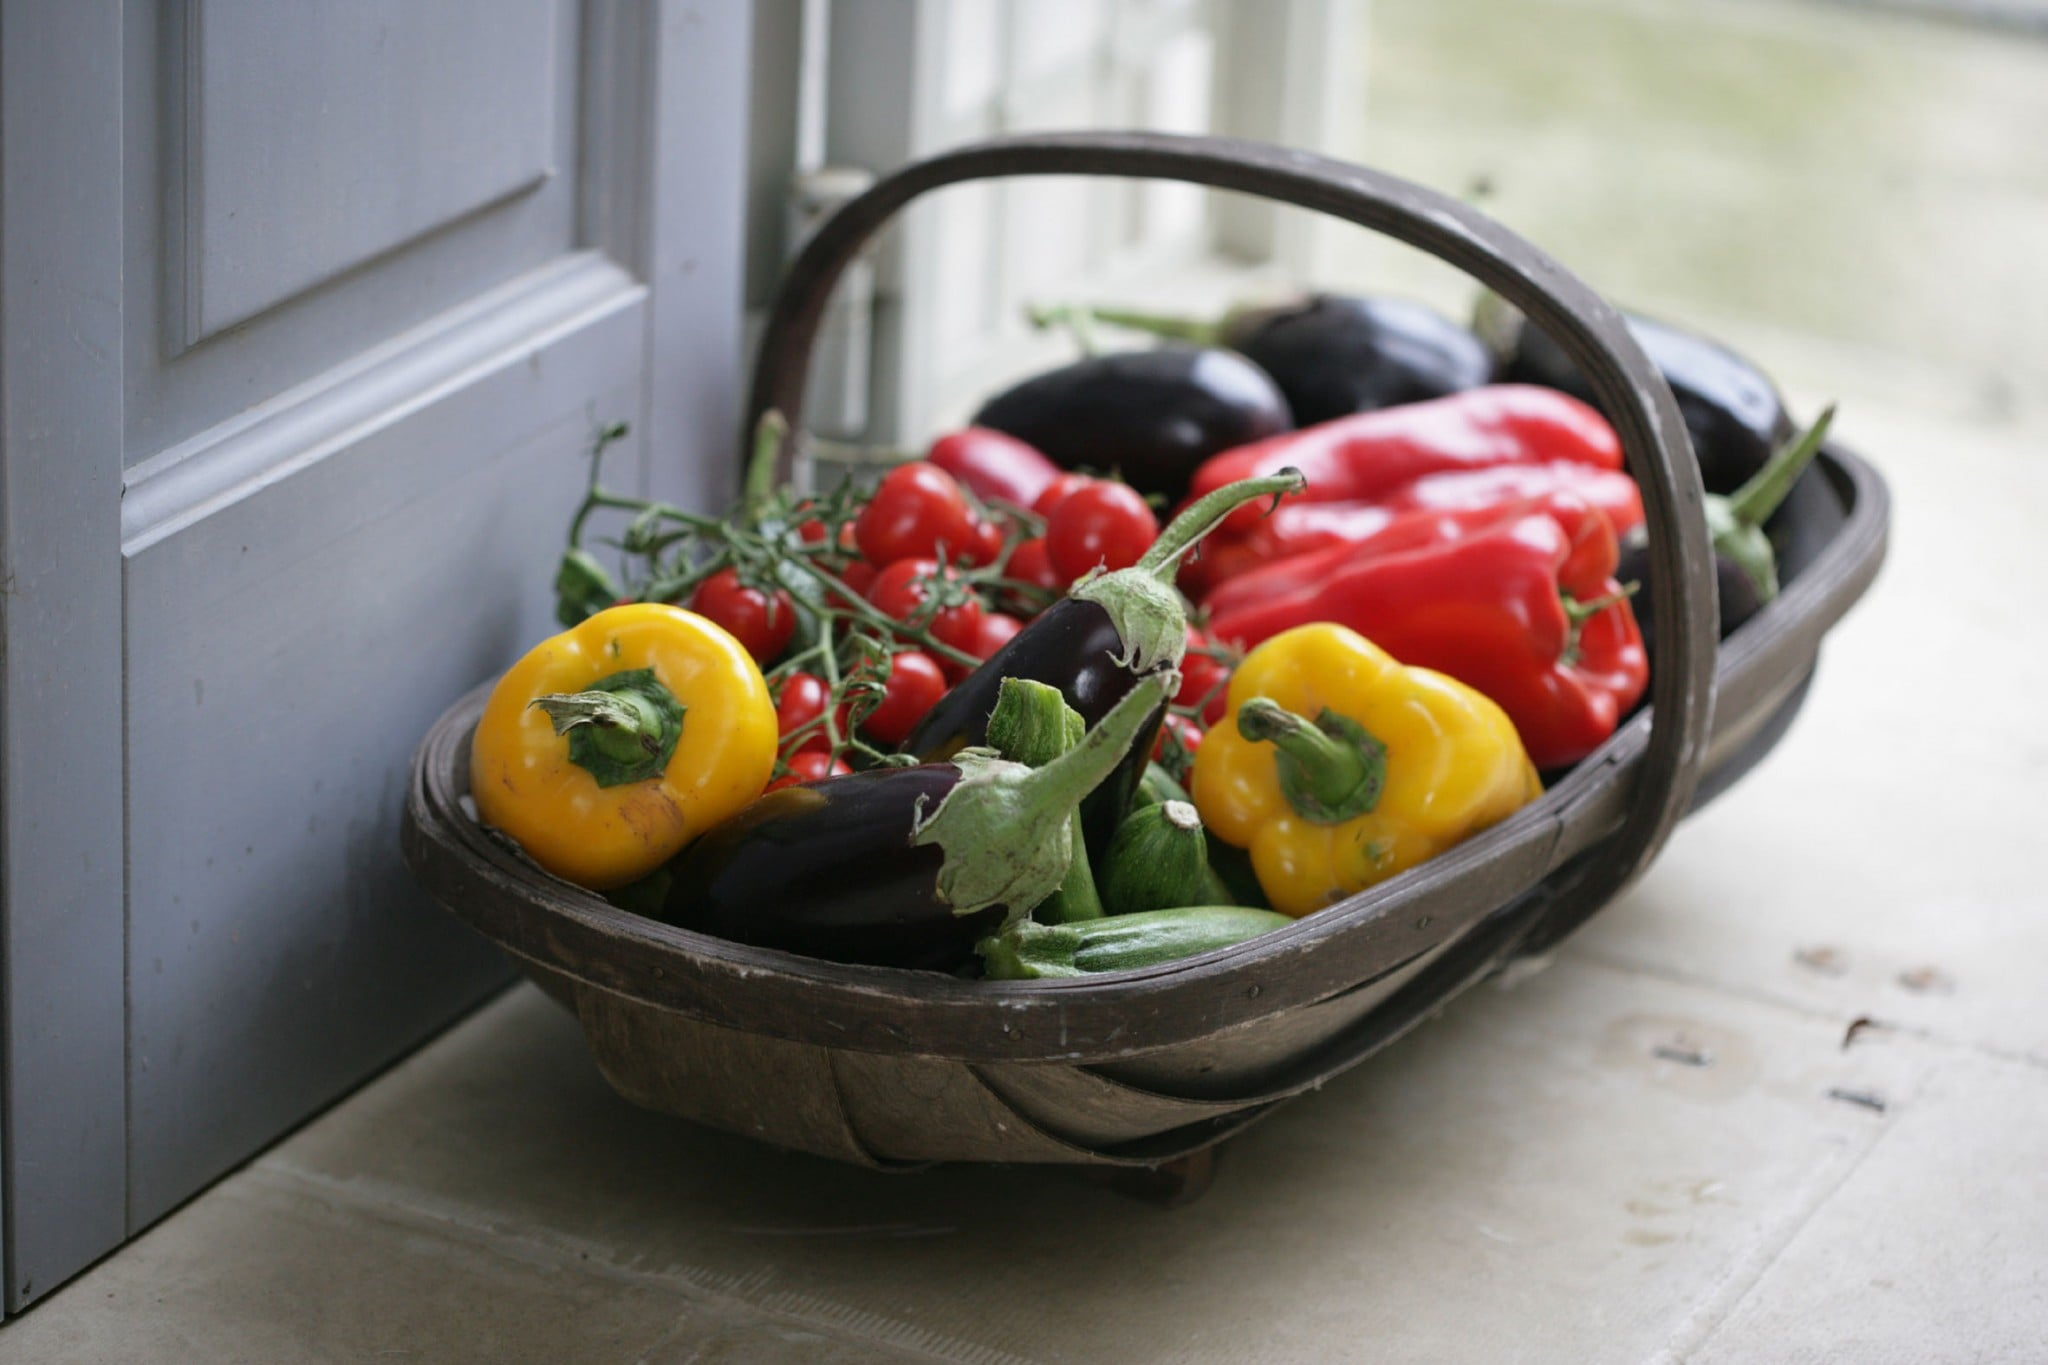 A delicious looking basket full of fresh Italian vegetables